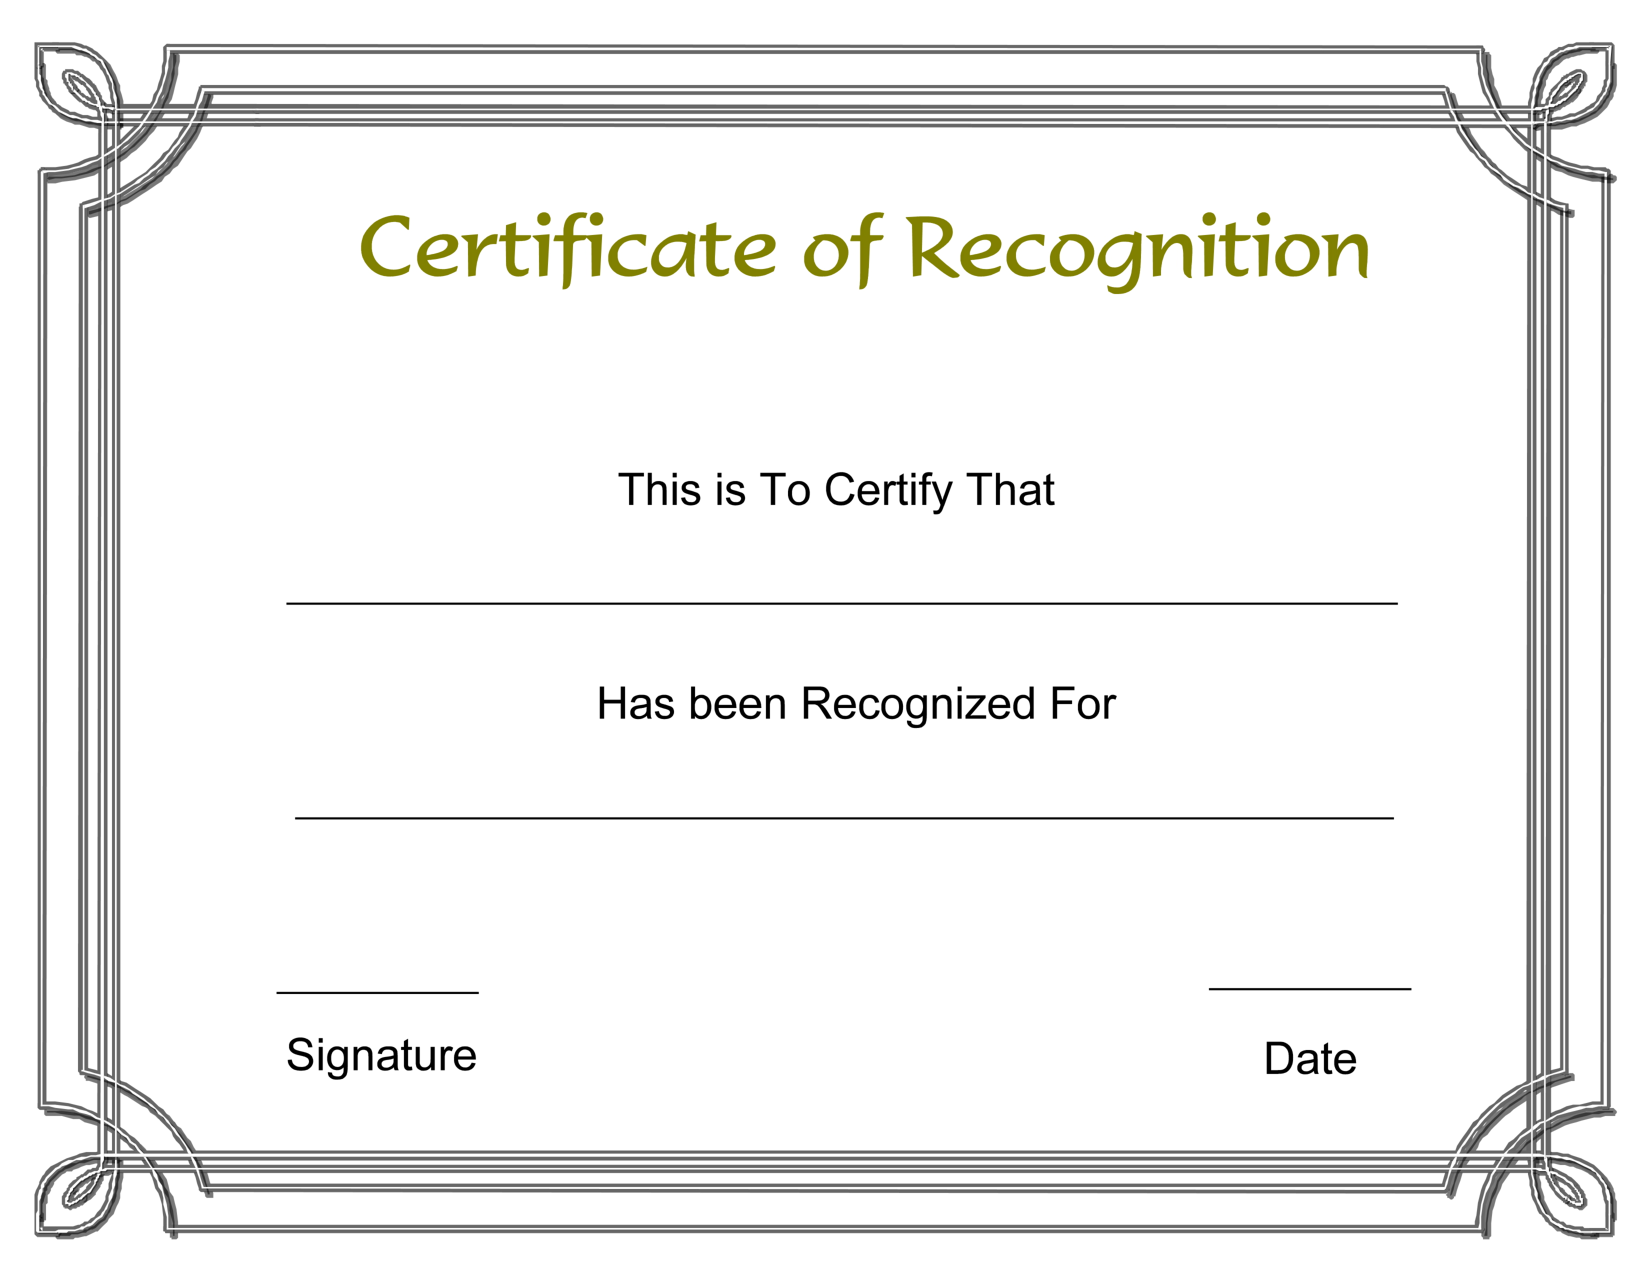 Thank you certificate template student certificate of appreciation blank certificate art award certificate certificatestreetcom yadclub Choice Image